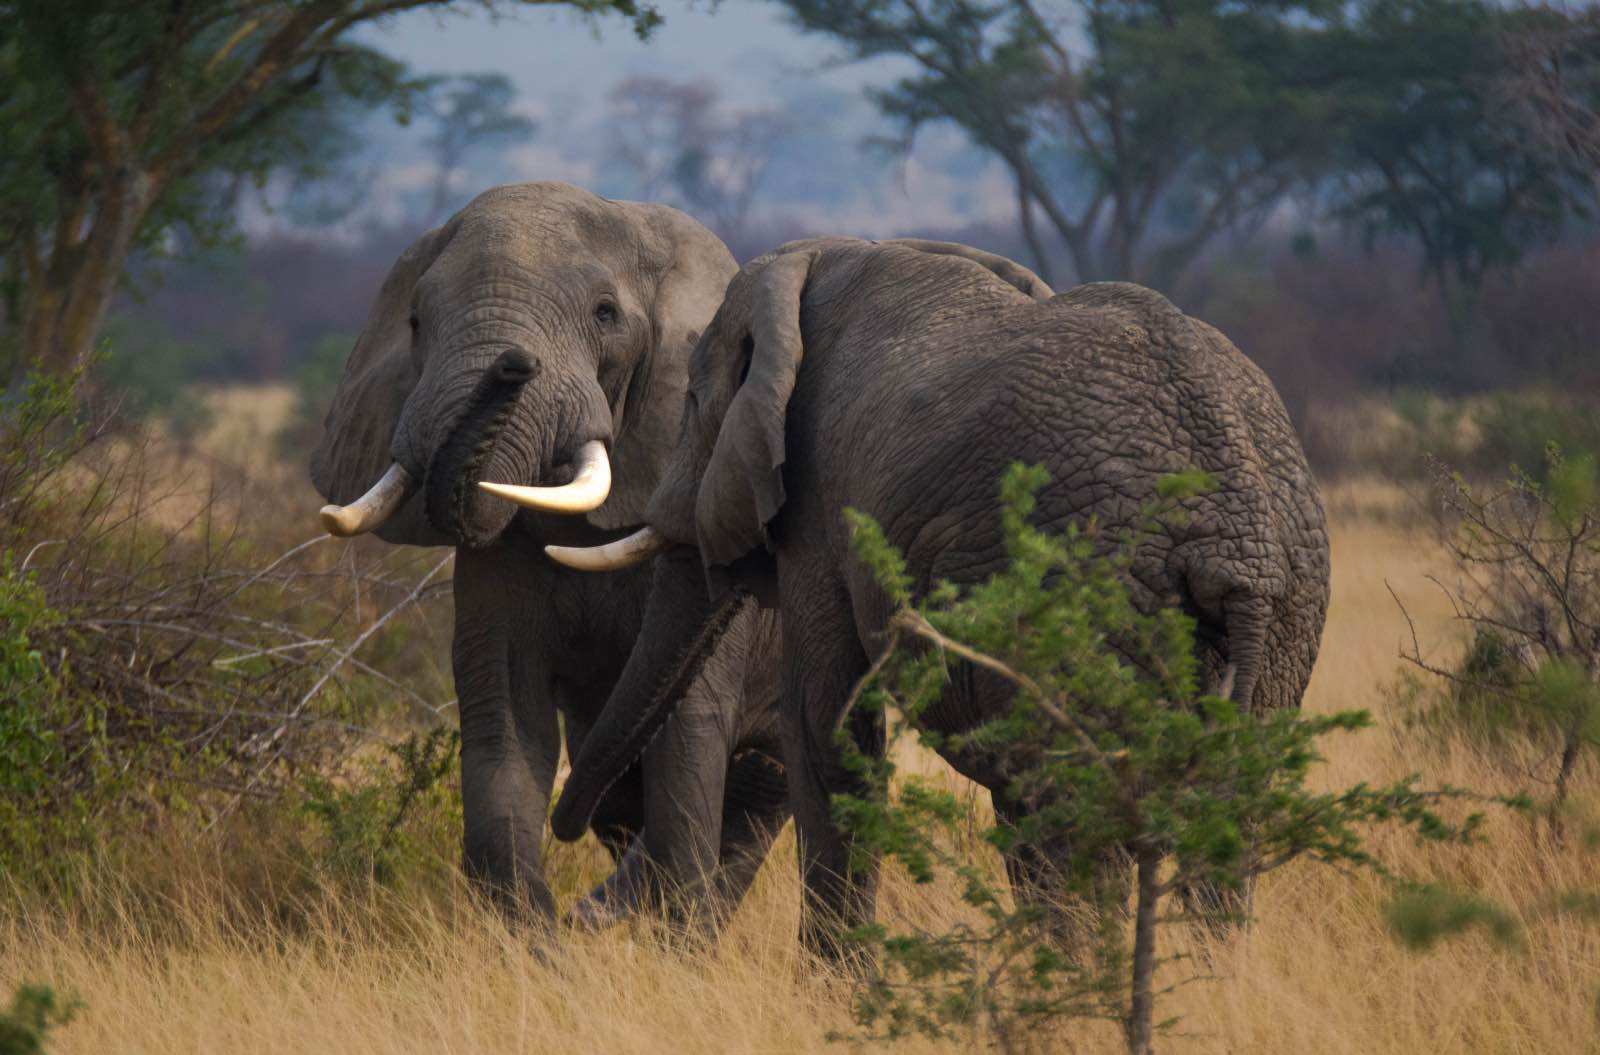 Large bull elephants try to dominate one another making for an amazing sighting in QENP